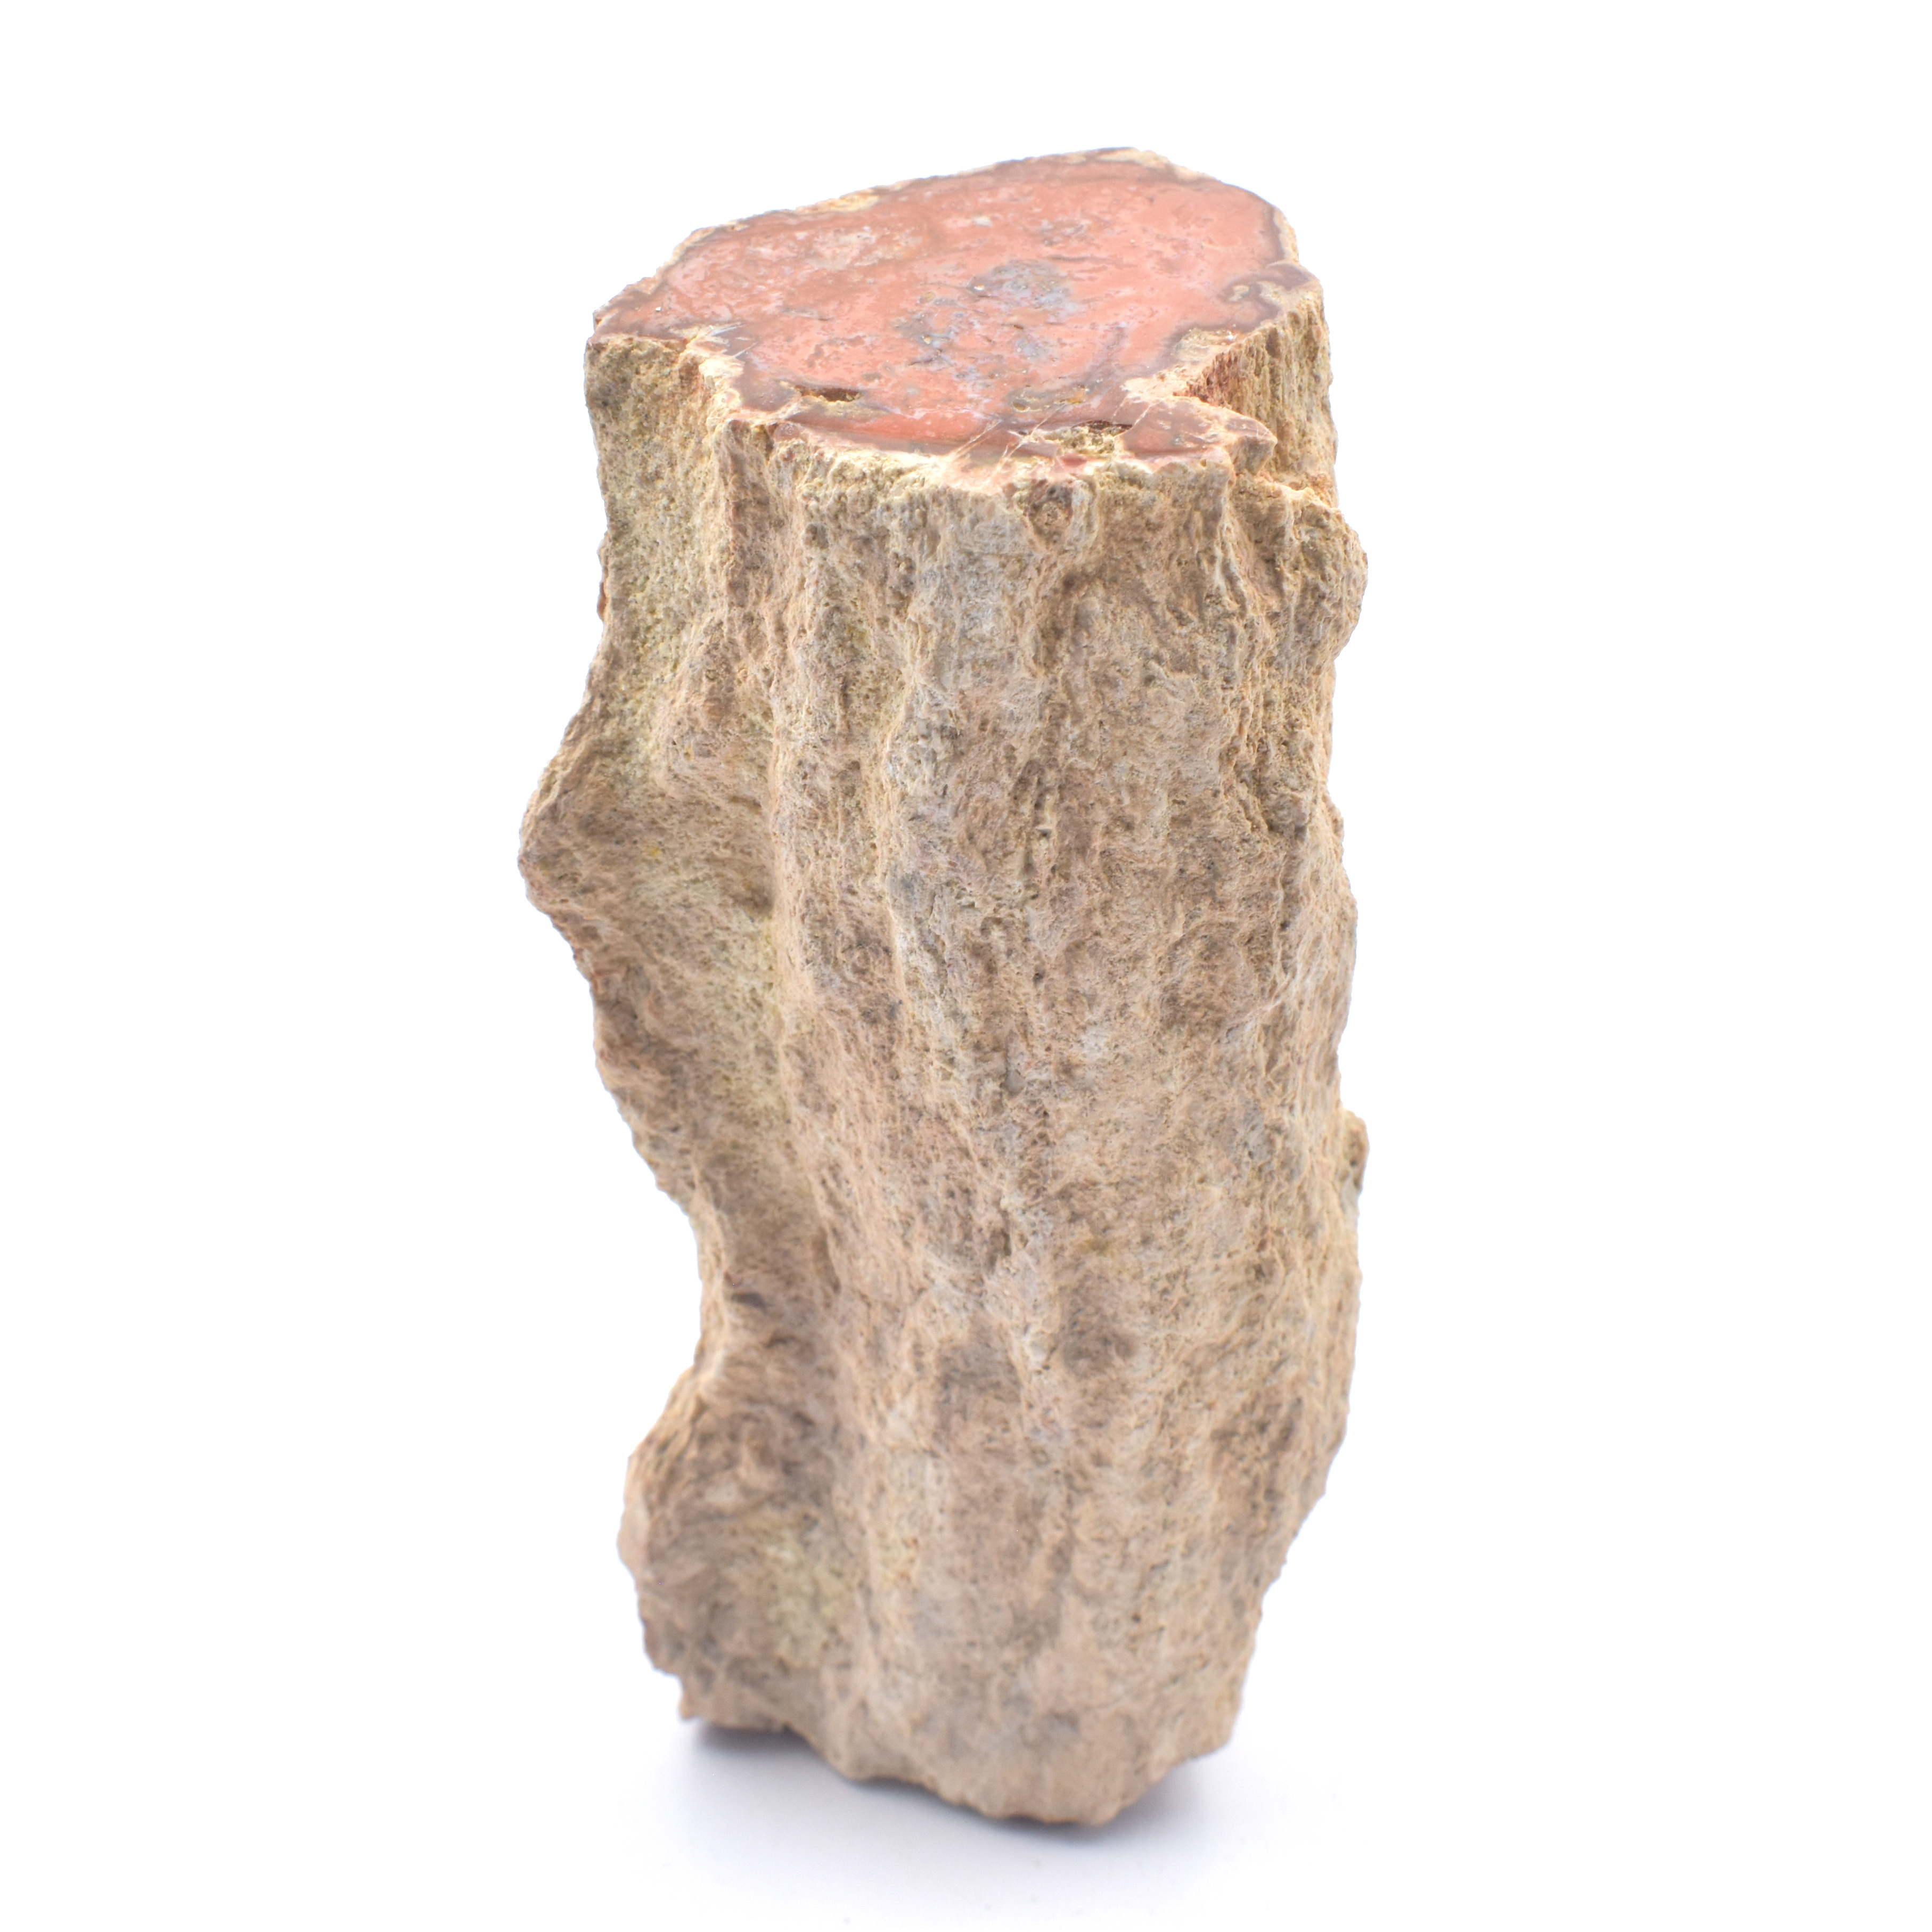 Crystal Specimens P-Z Petrified Wood Log Long wholesale crystals online